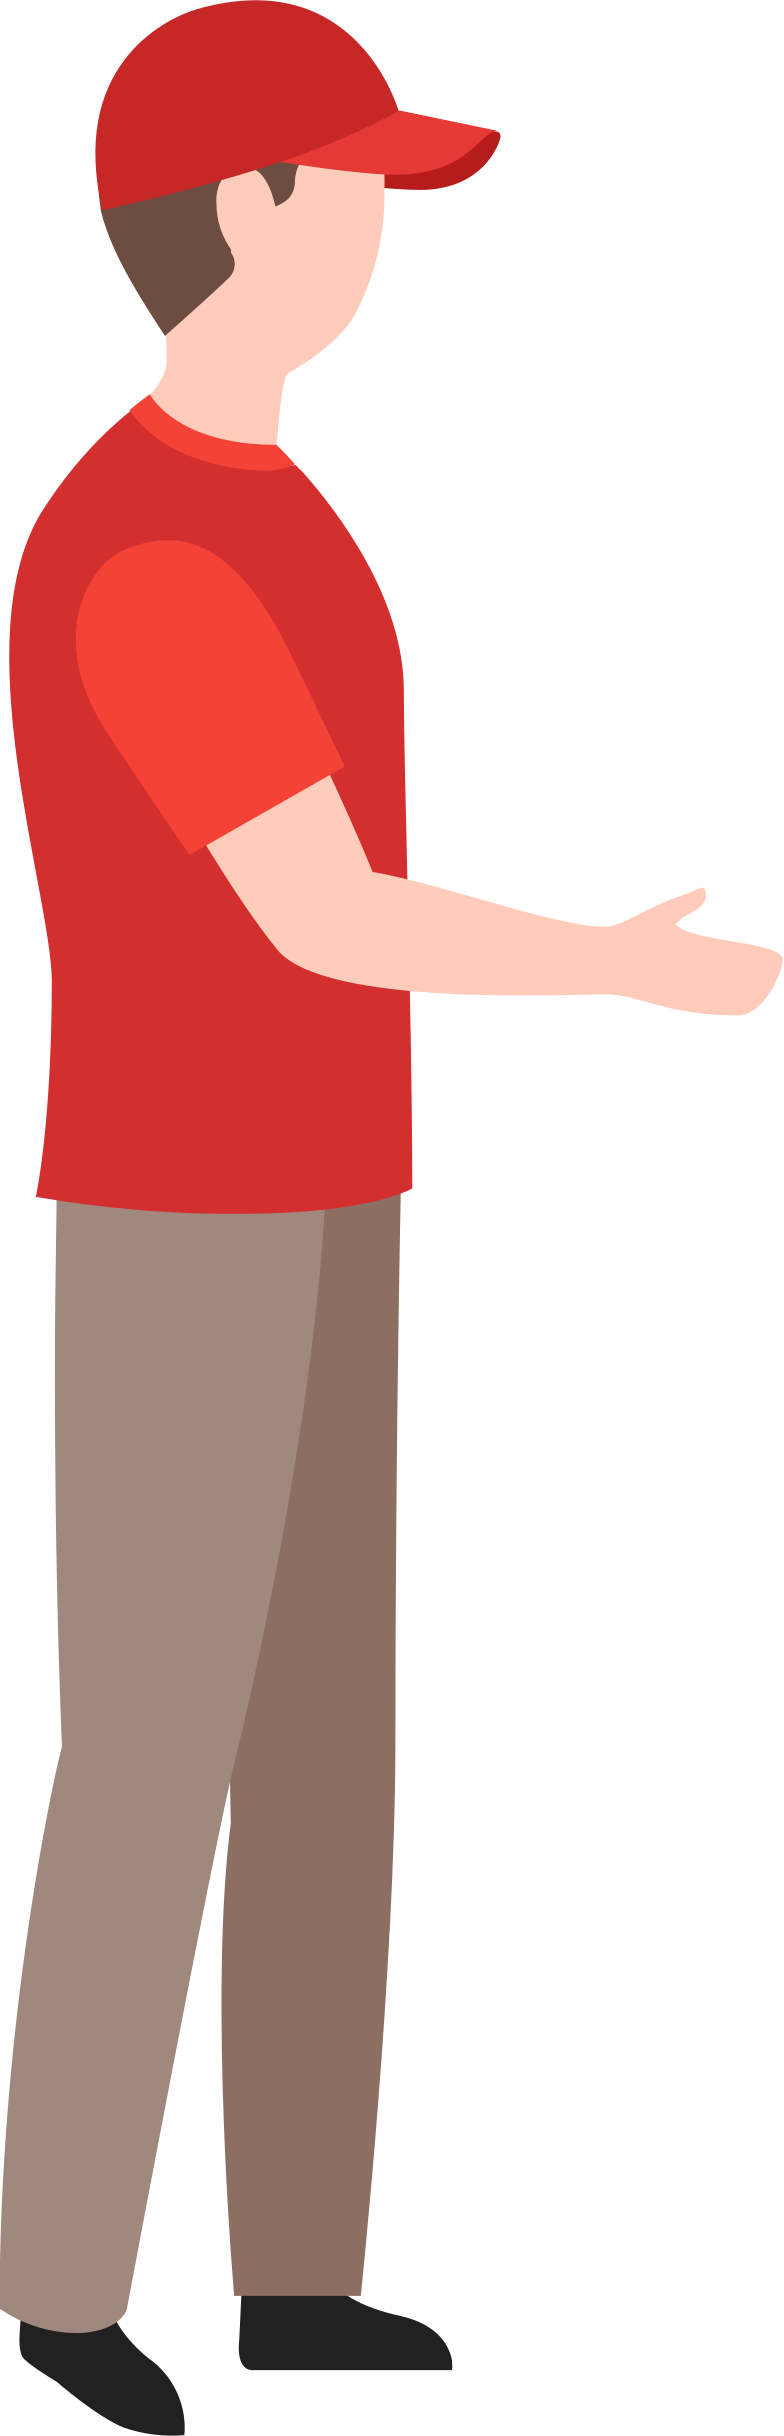 delivery man in red cap Clipart illustration in PNG, SVG